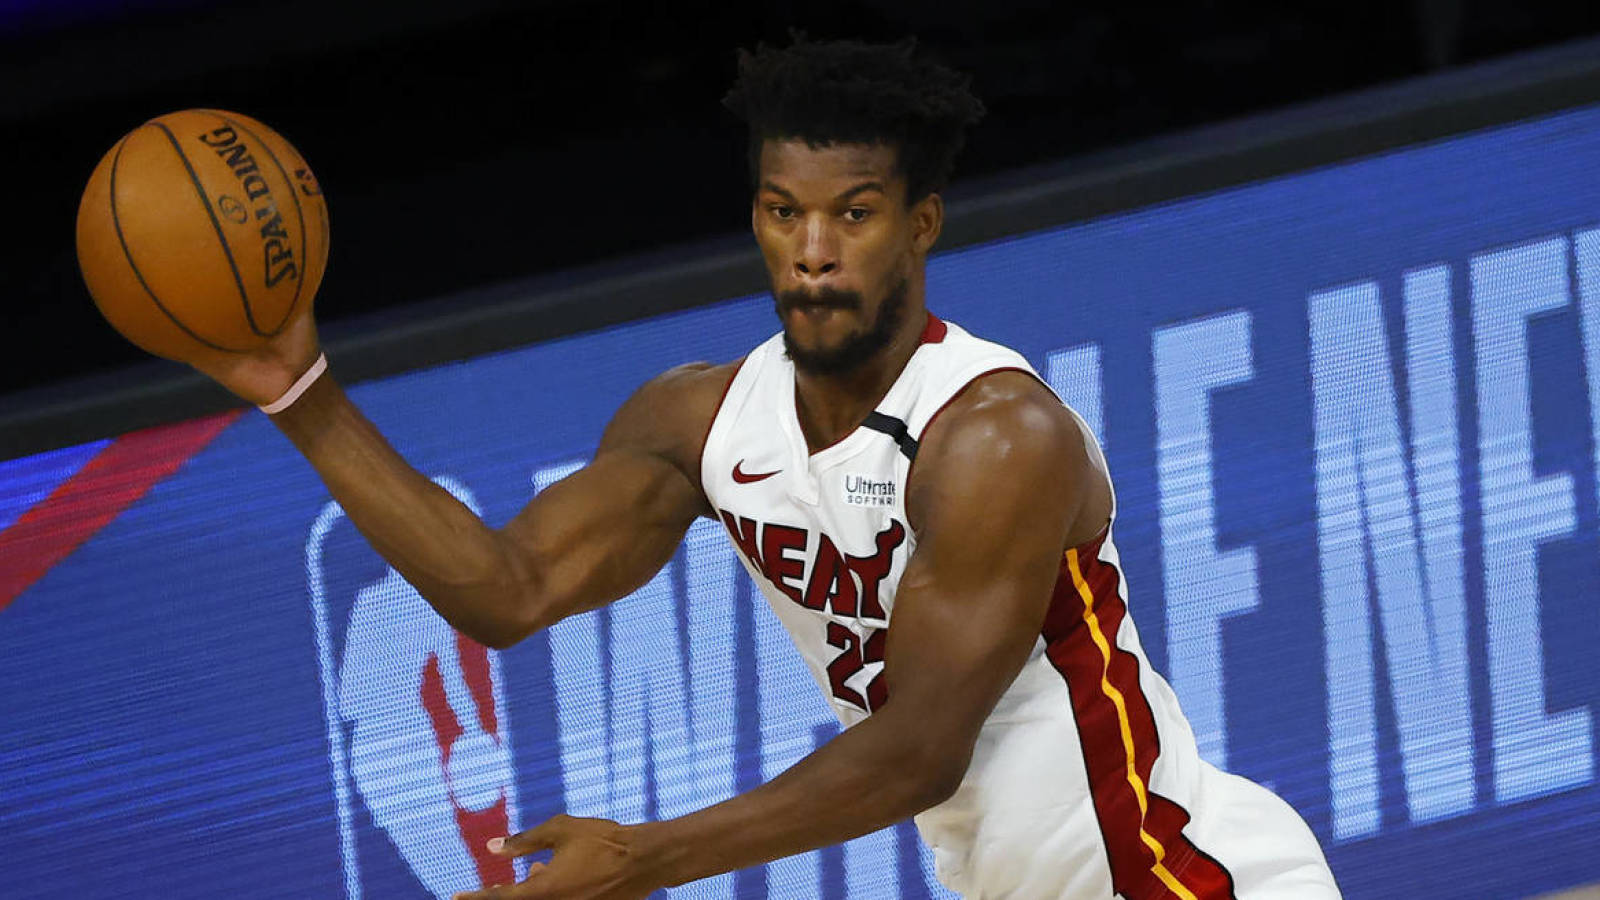 Heat S Jimmy Butler Will Miss Third Straight Game With Sore Foot Yardbarker